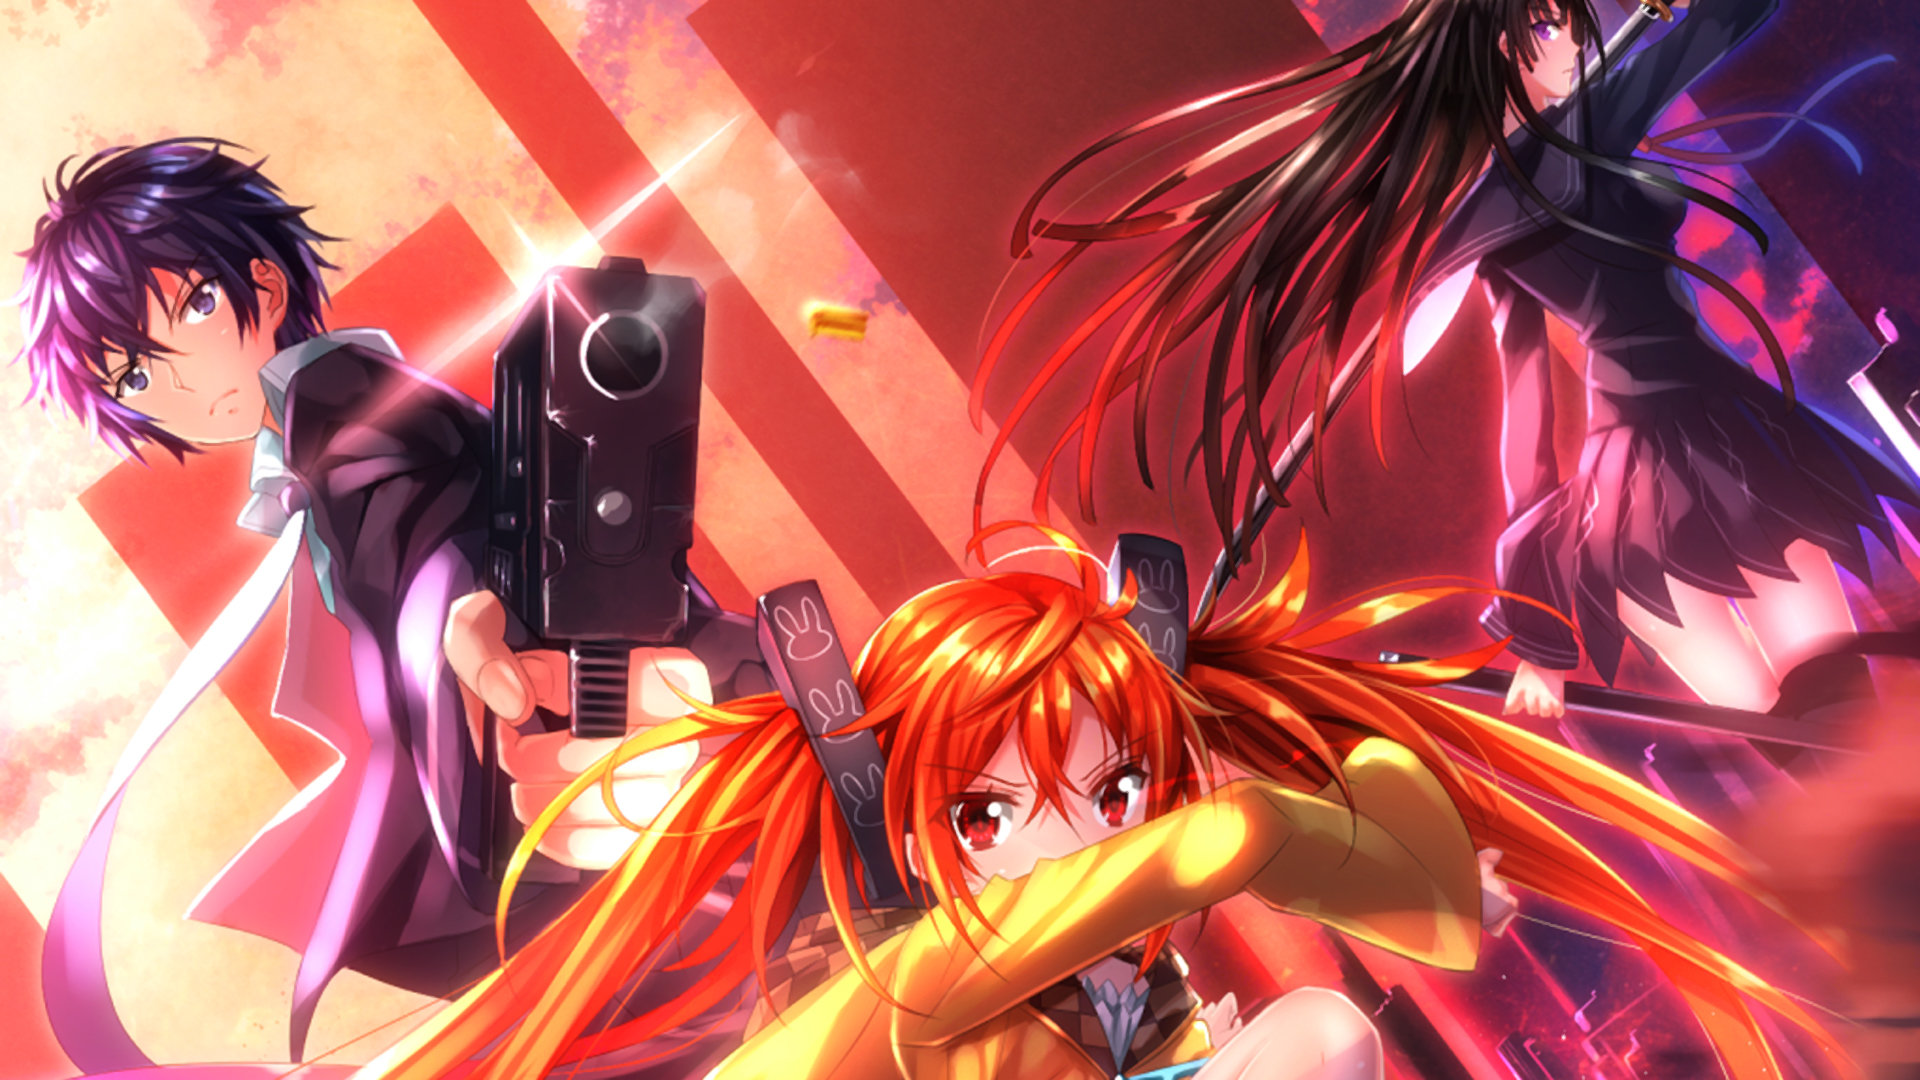 Free Black Bullet High Quality Wallpaper Id342393 For Full Hd 1080p